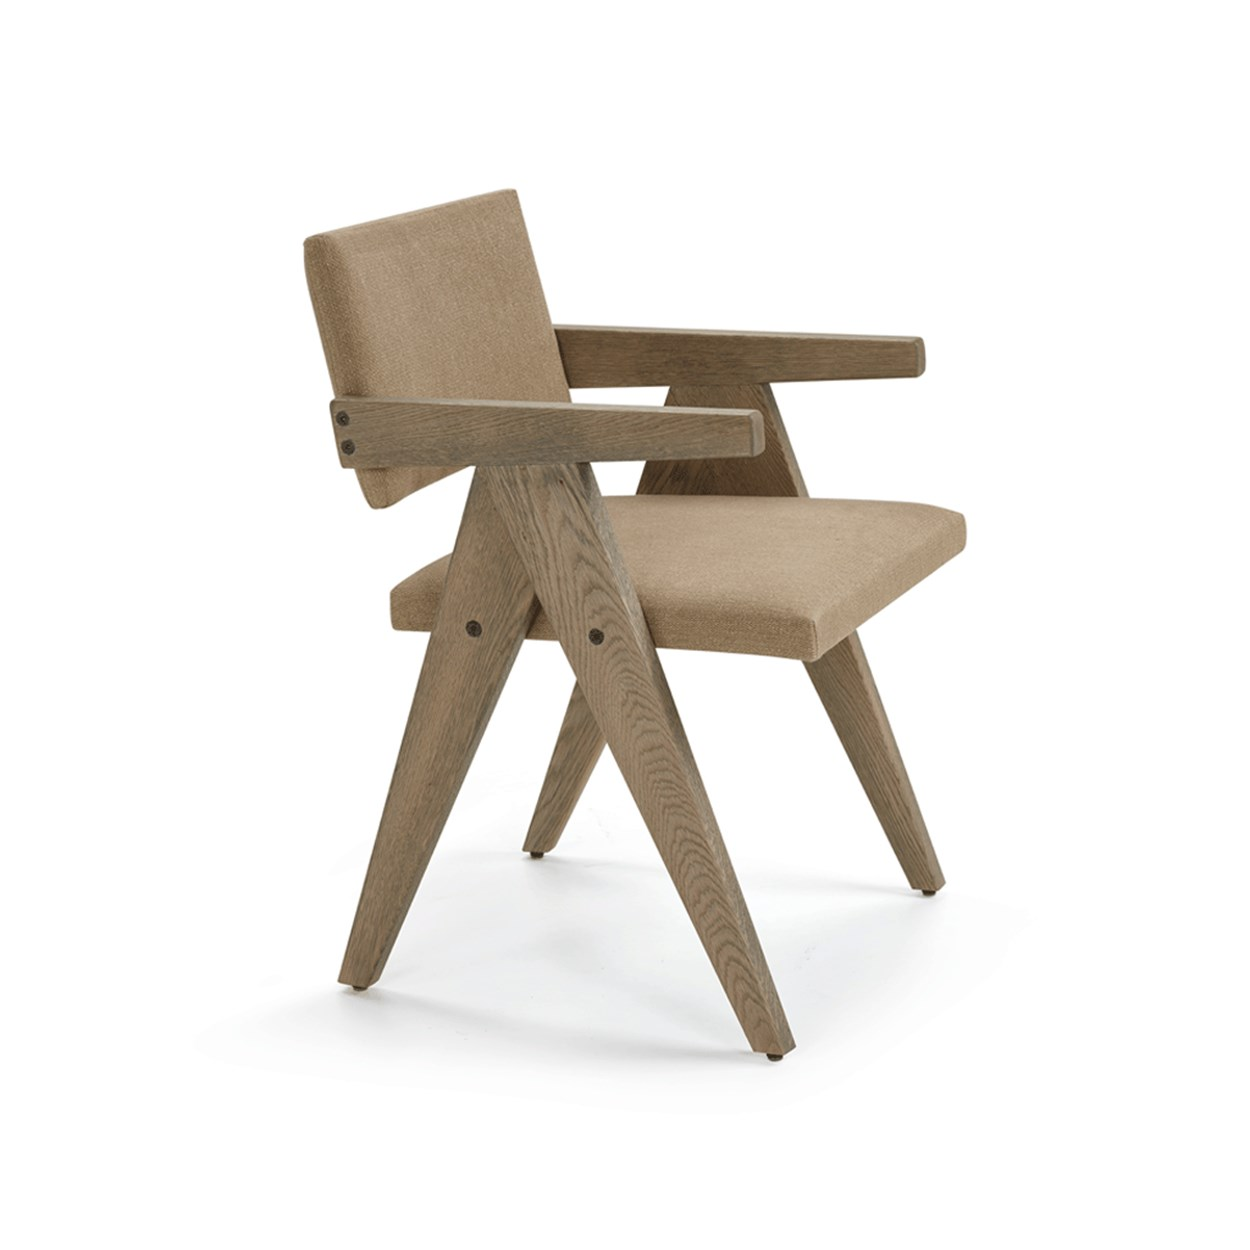 blasco-birdie-chair-1.jpg